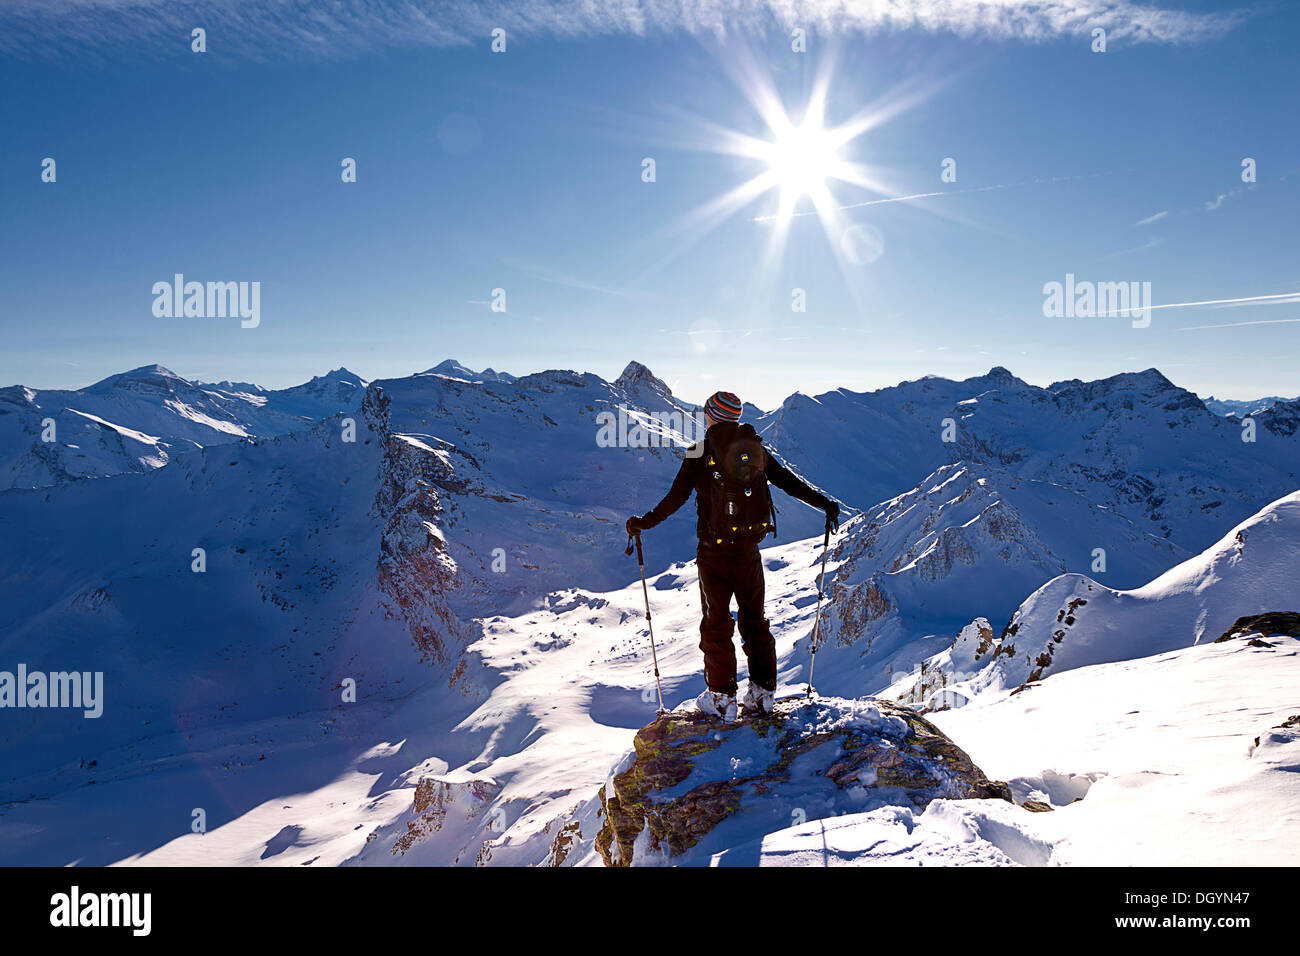 Winter sports enthusiast standing in front of the bright sun, Tux Alps, Tyrol, Austria, Europe - Stock Image